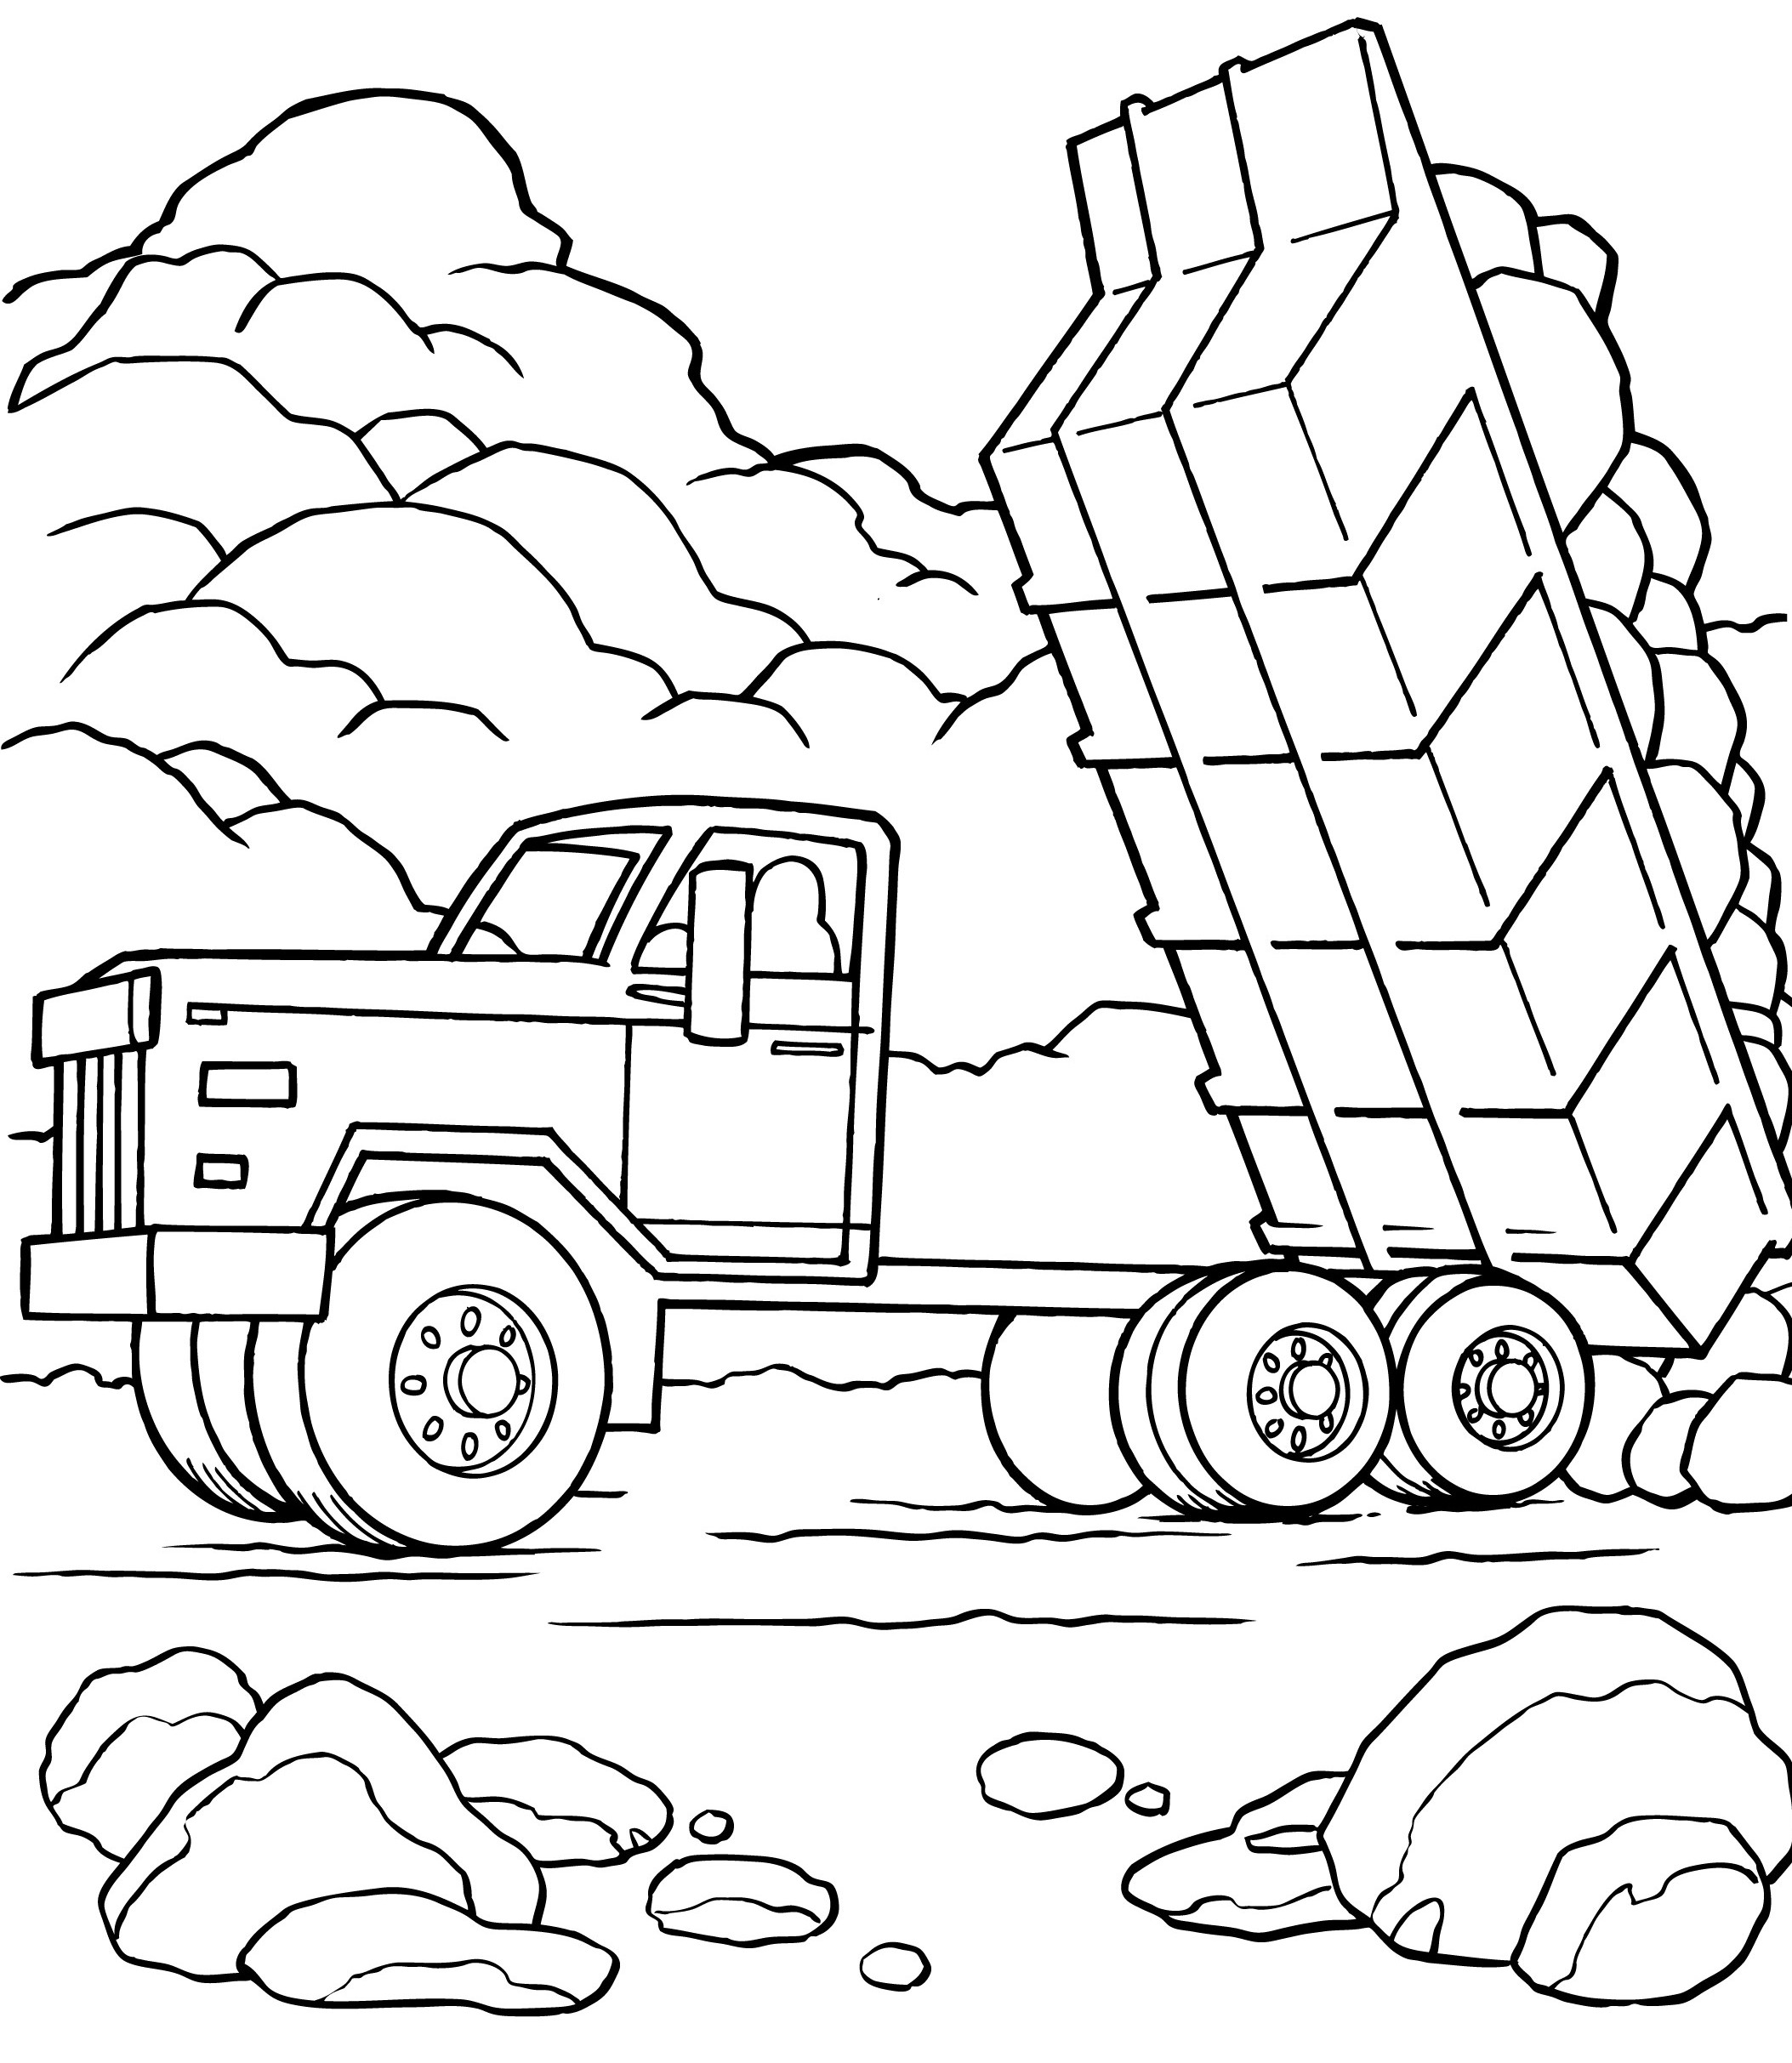 The Best Free Preposition Coloring Page Images Download From 9 Free